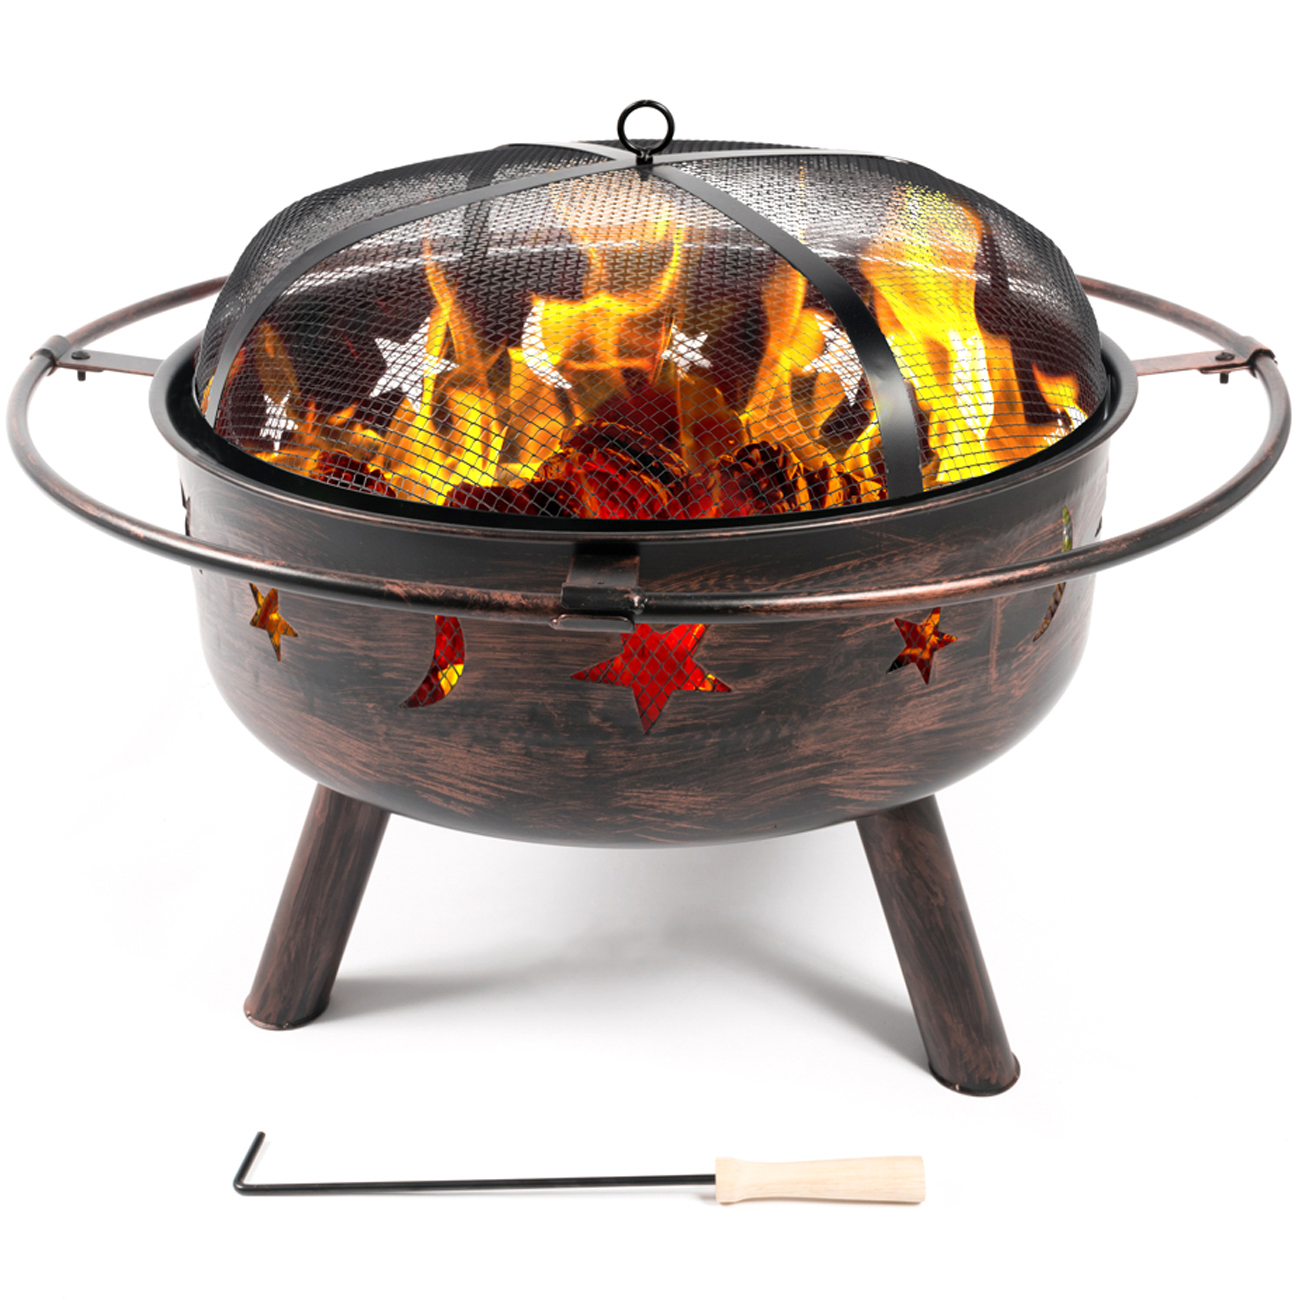 Belleze Outdoor Firepit Diamond Wood-Burning Log Firepit Sky Stars Moons Design w  Lids by Belleze